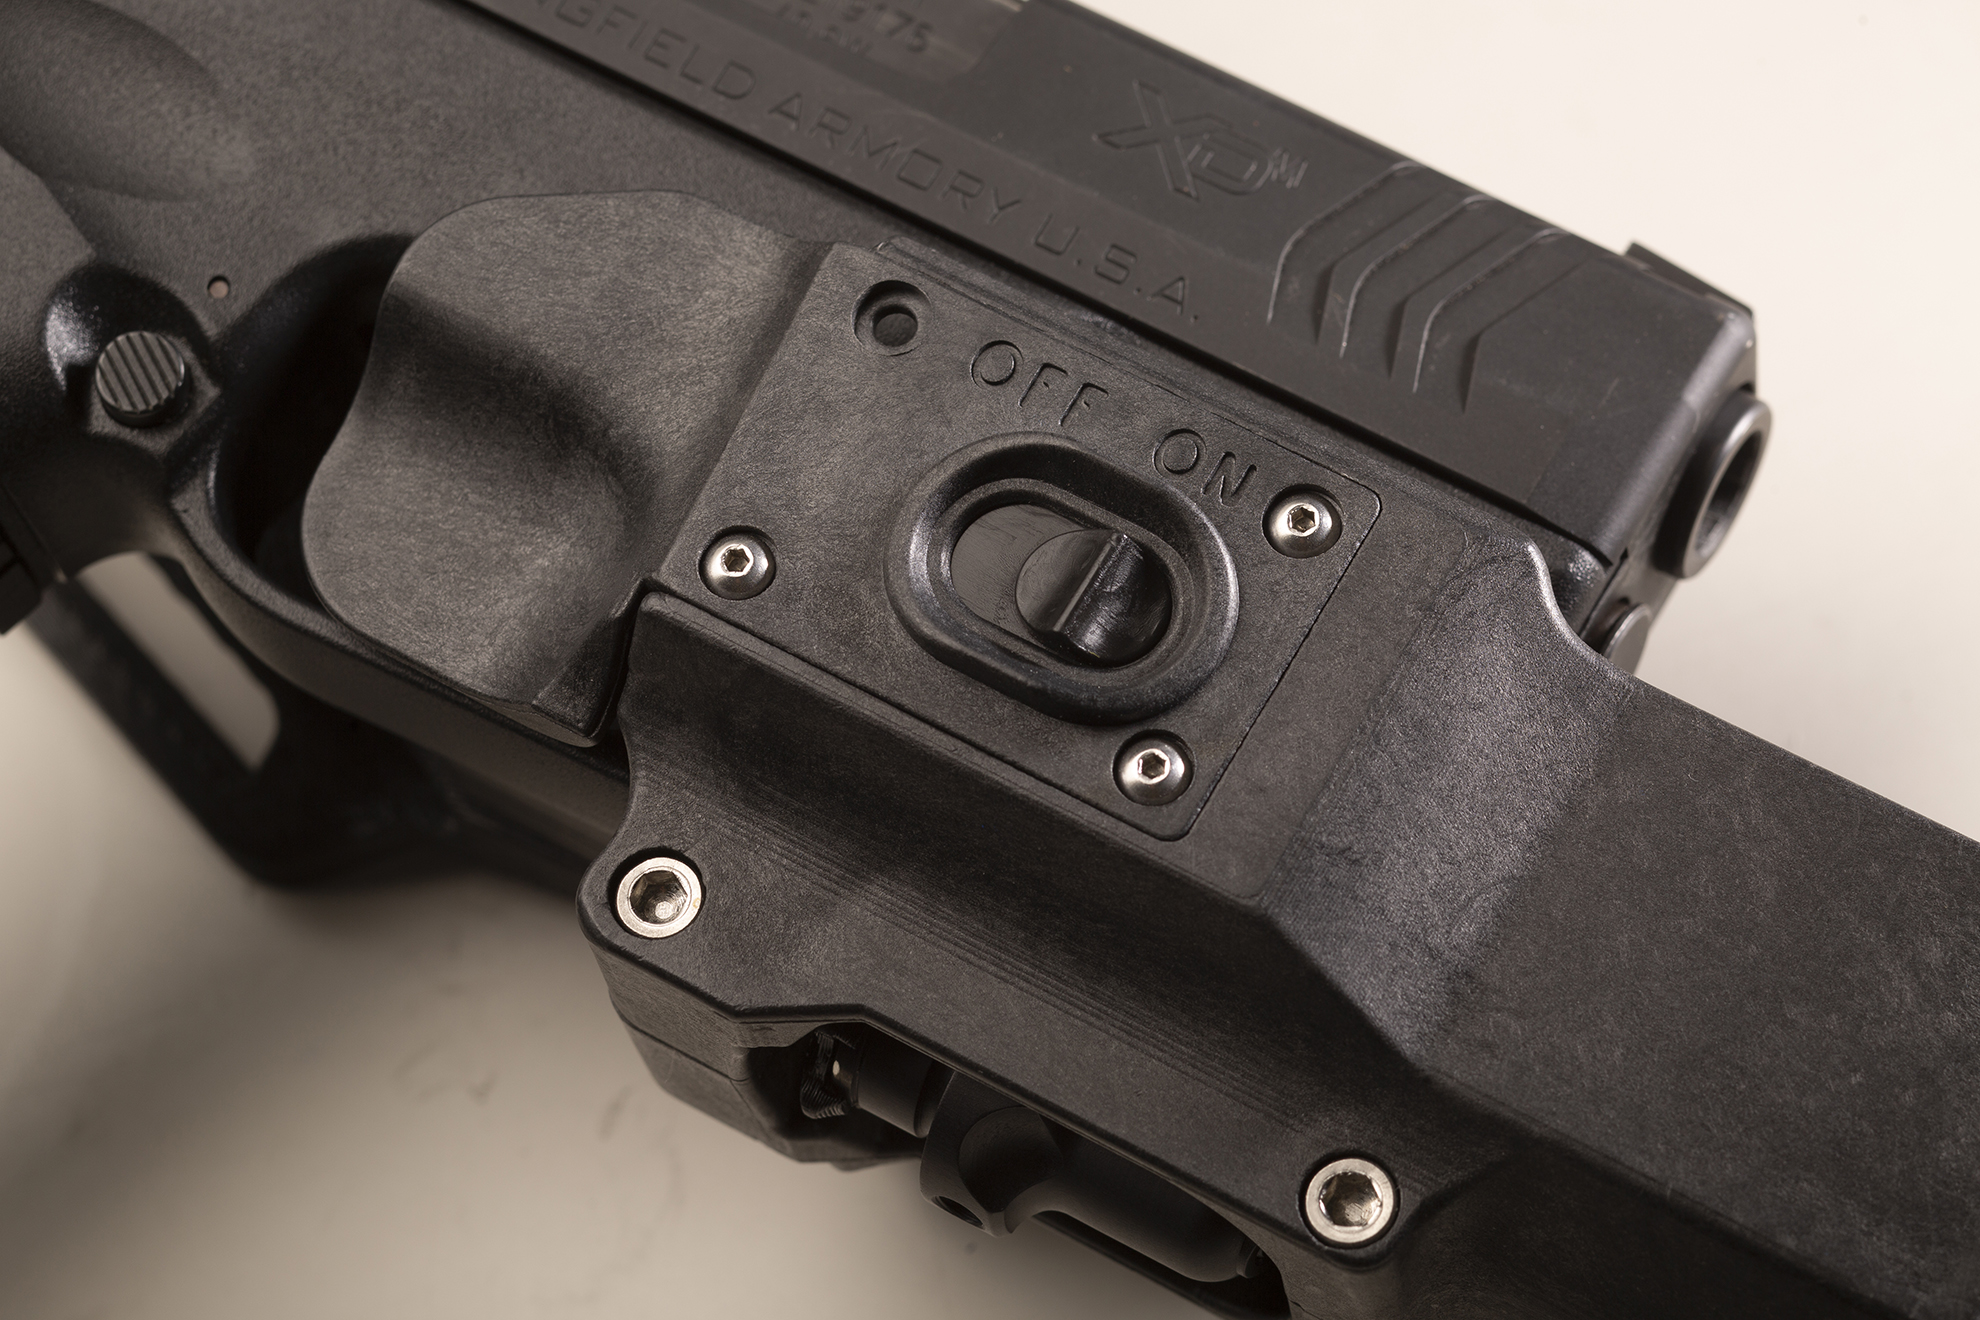 Surefire MasterFire holster provides instant light activation